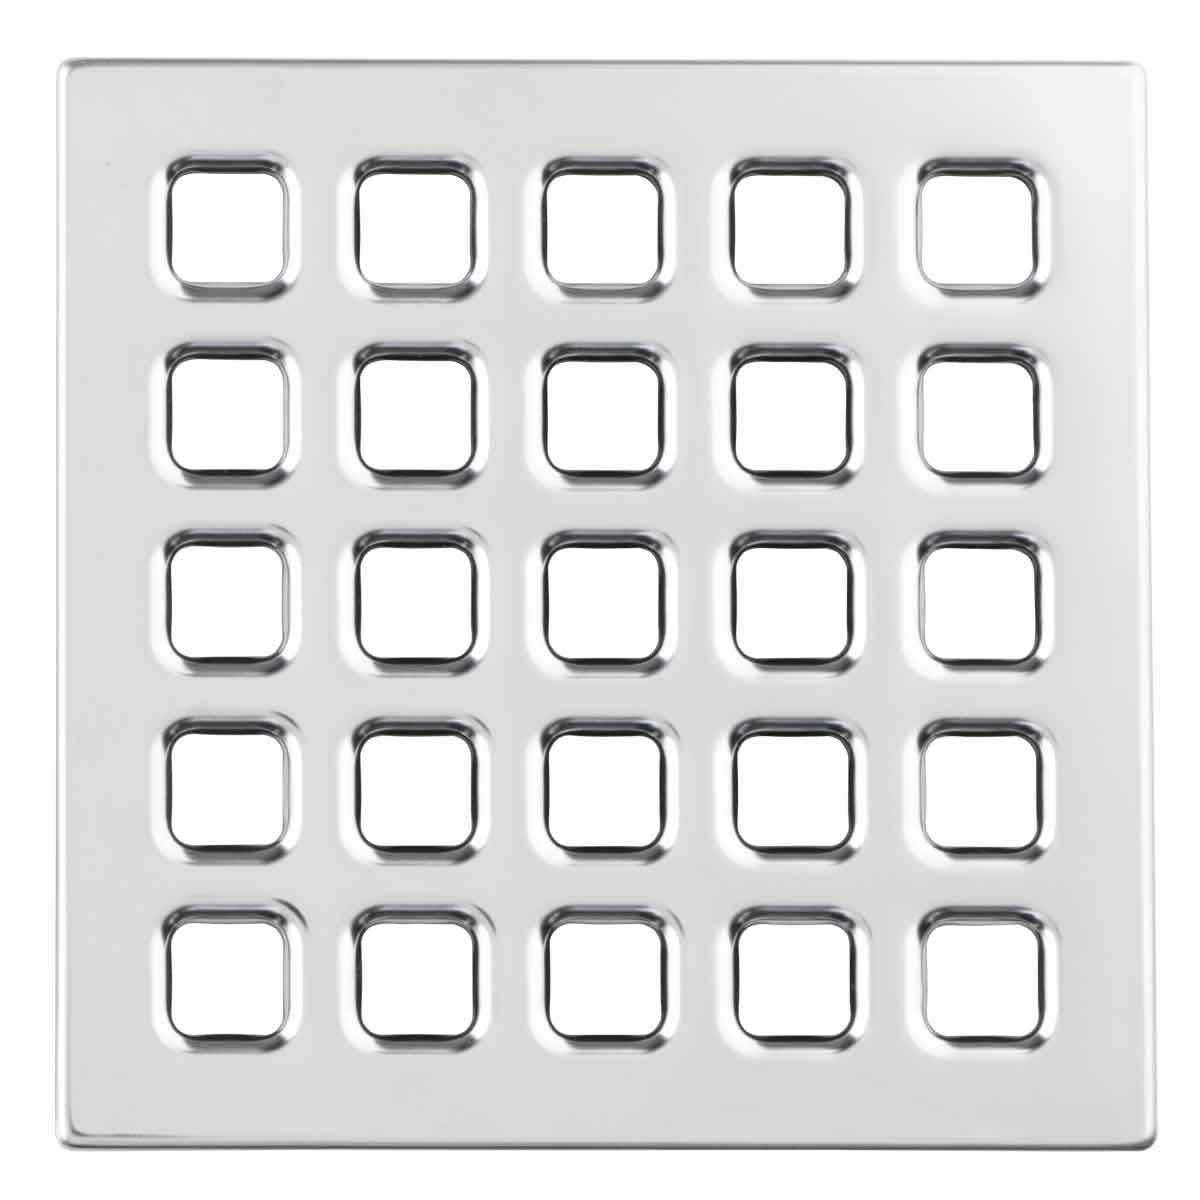 Chrome Durock Pro Series 4 inch Grate 170153